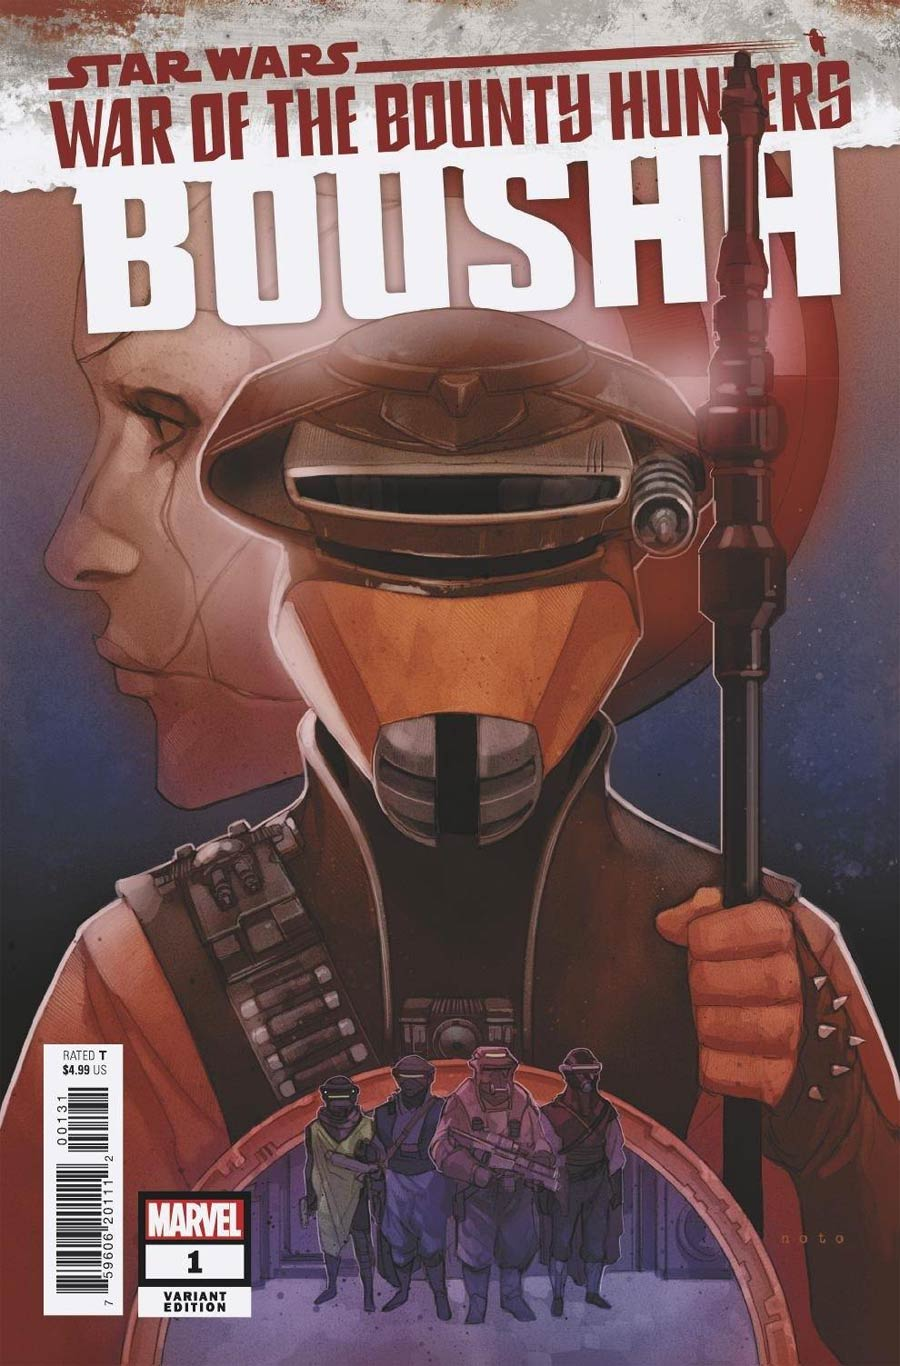 Star Wars War Of The Bounty Hunters Boushh #1 (One Shot) Cover C Variant Phil Noto Cover